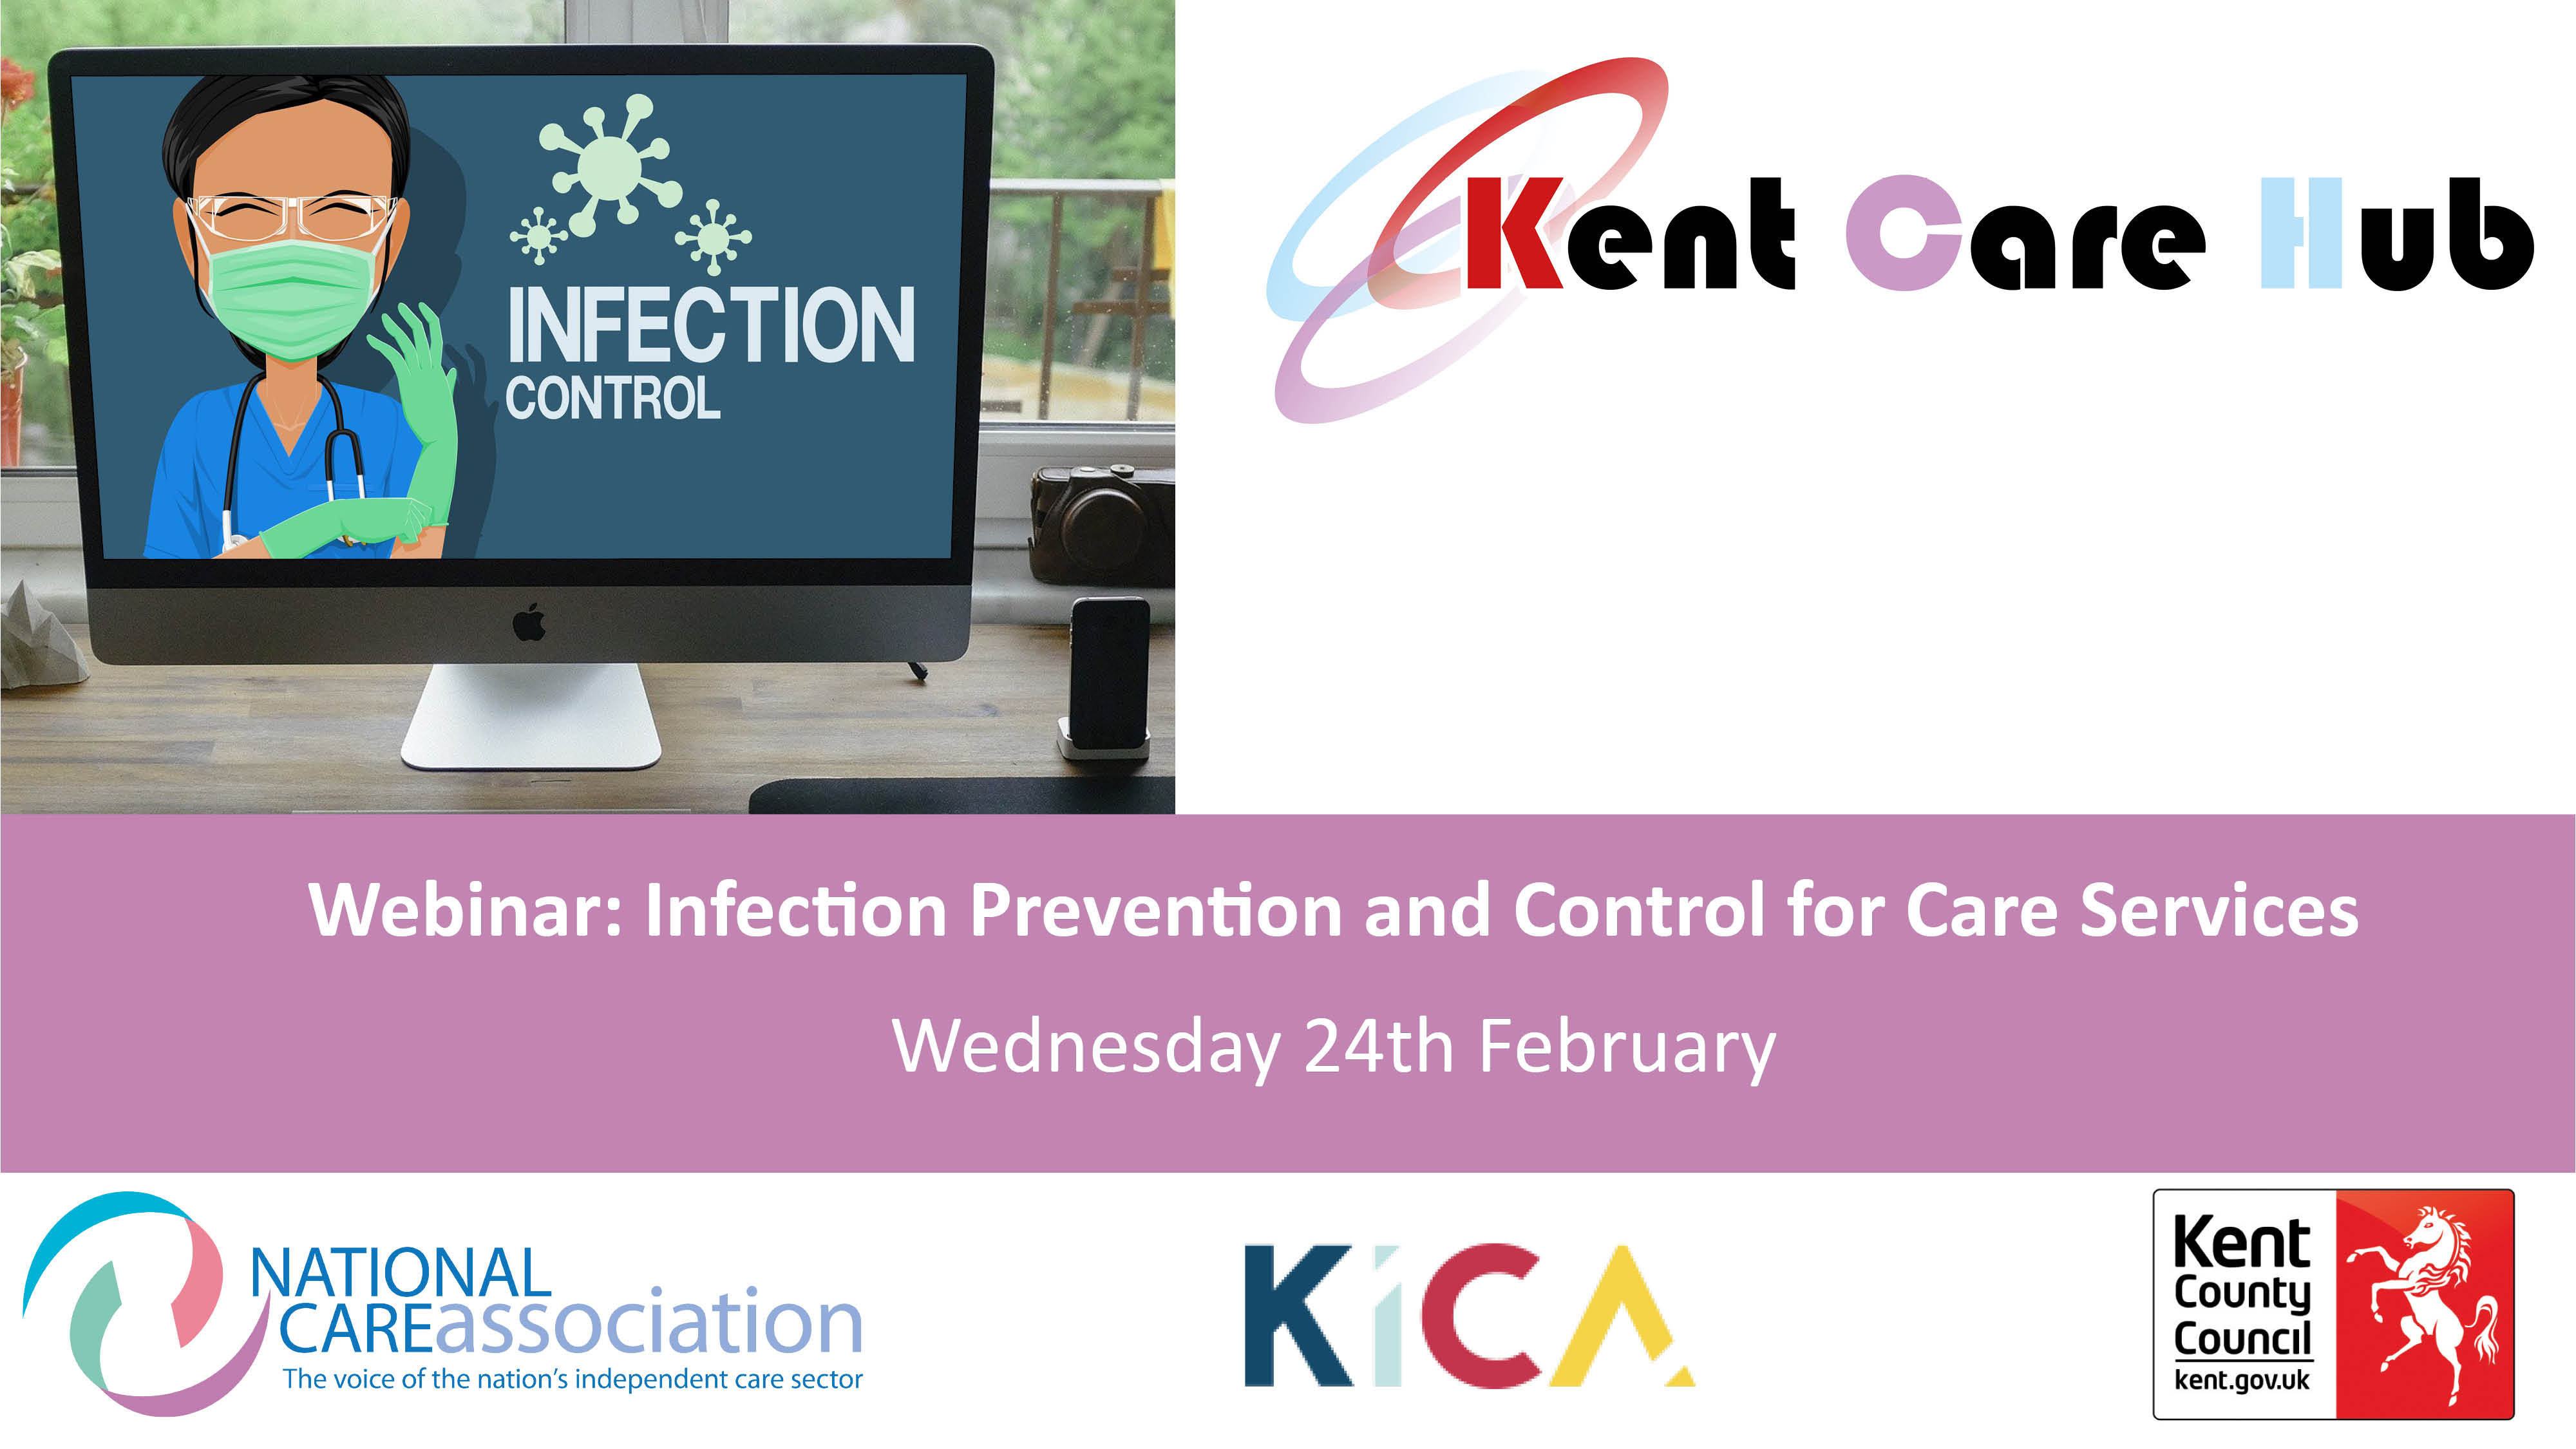 Webinar: Training on Infection Prevention and Control for Care Services